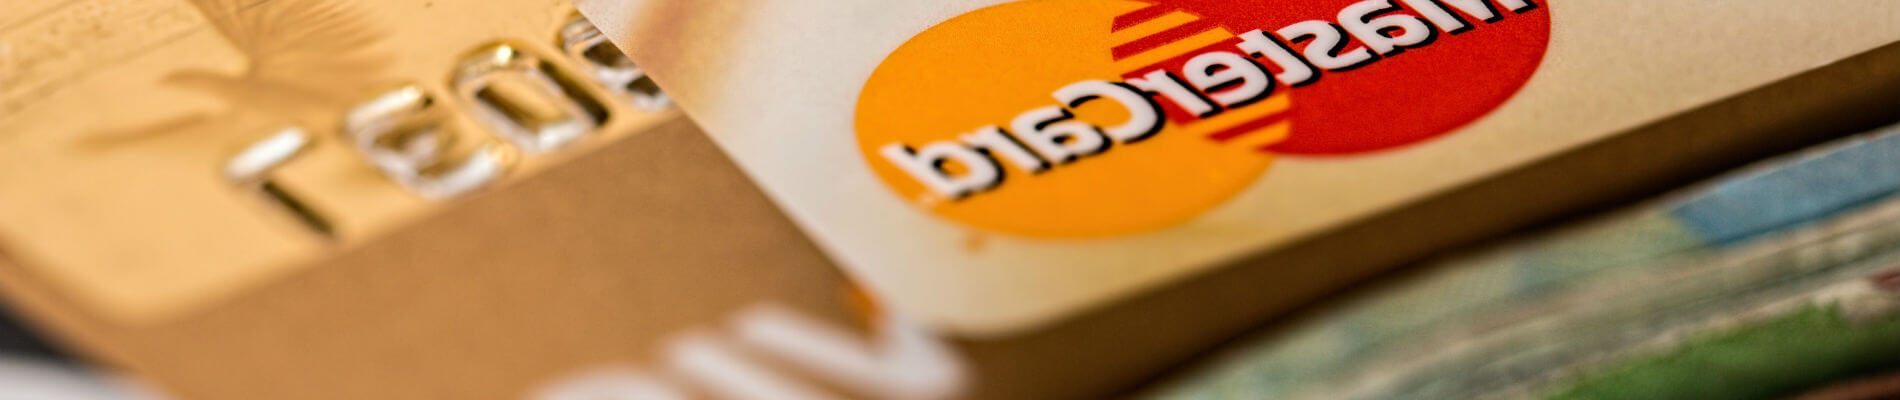 credit card functionality